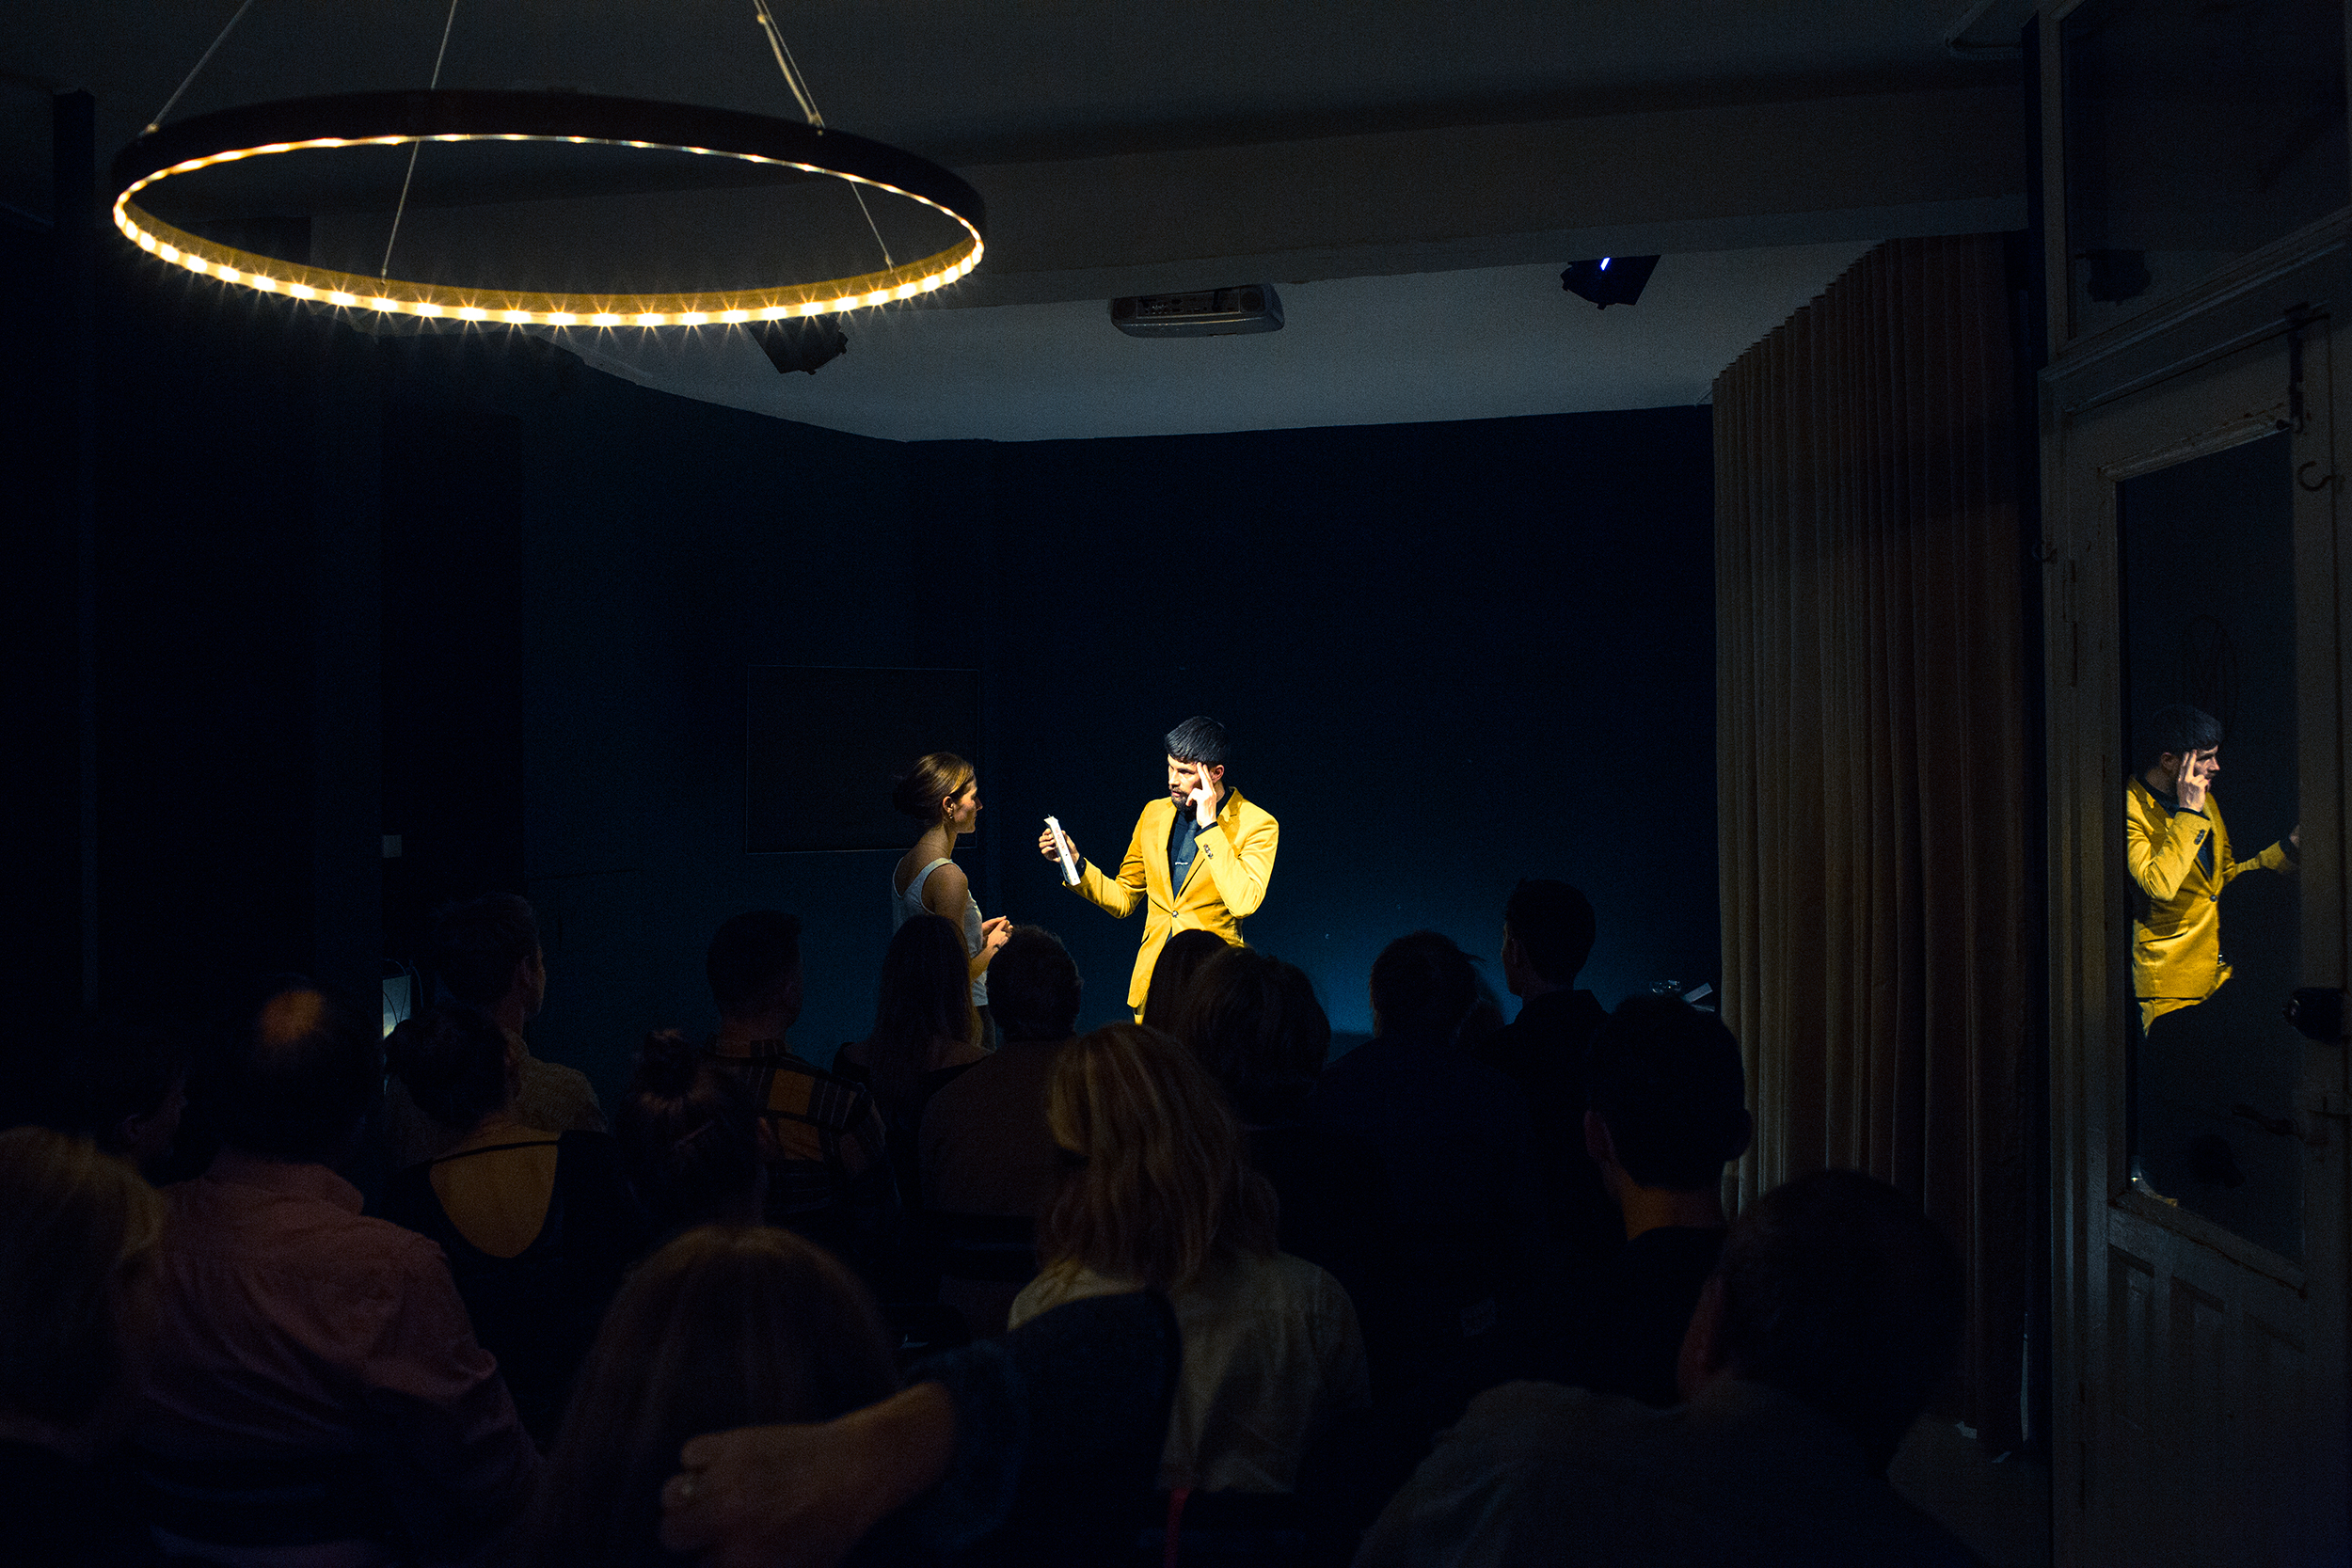 Performance at The Magic Room by Magic Malmstrøm